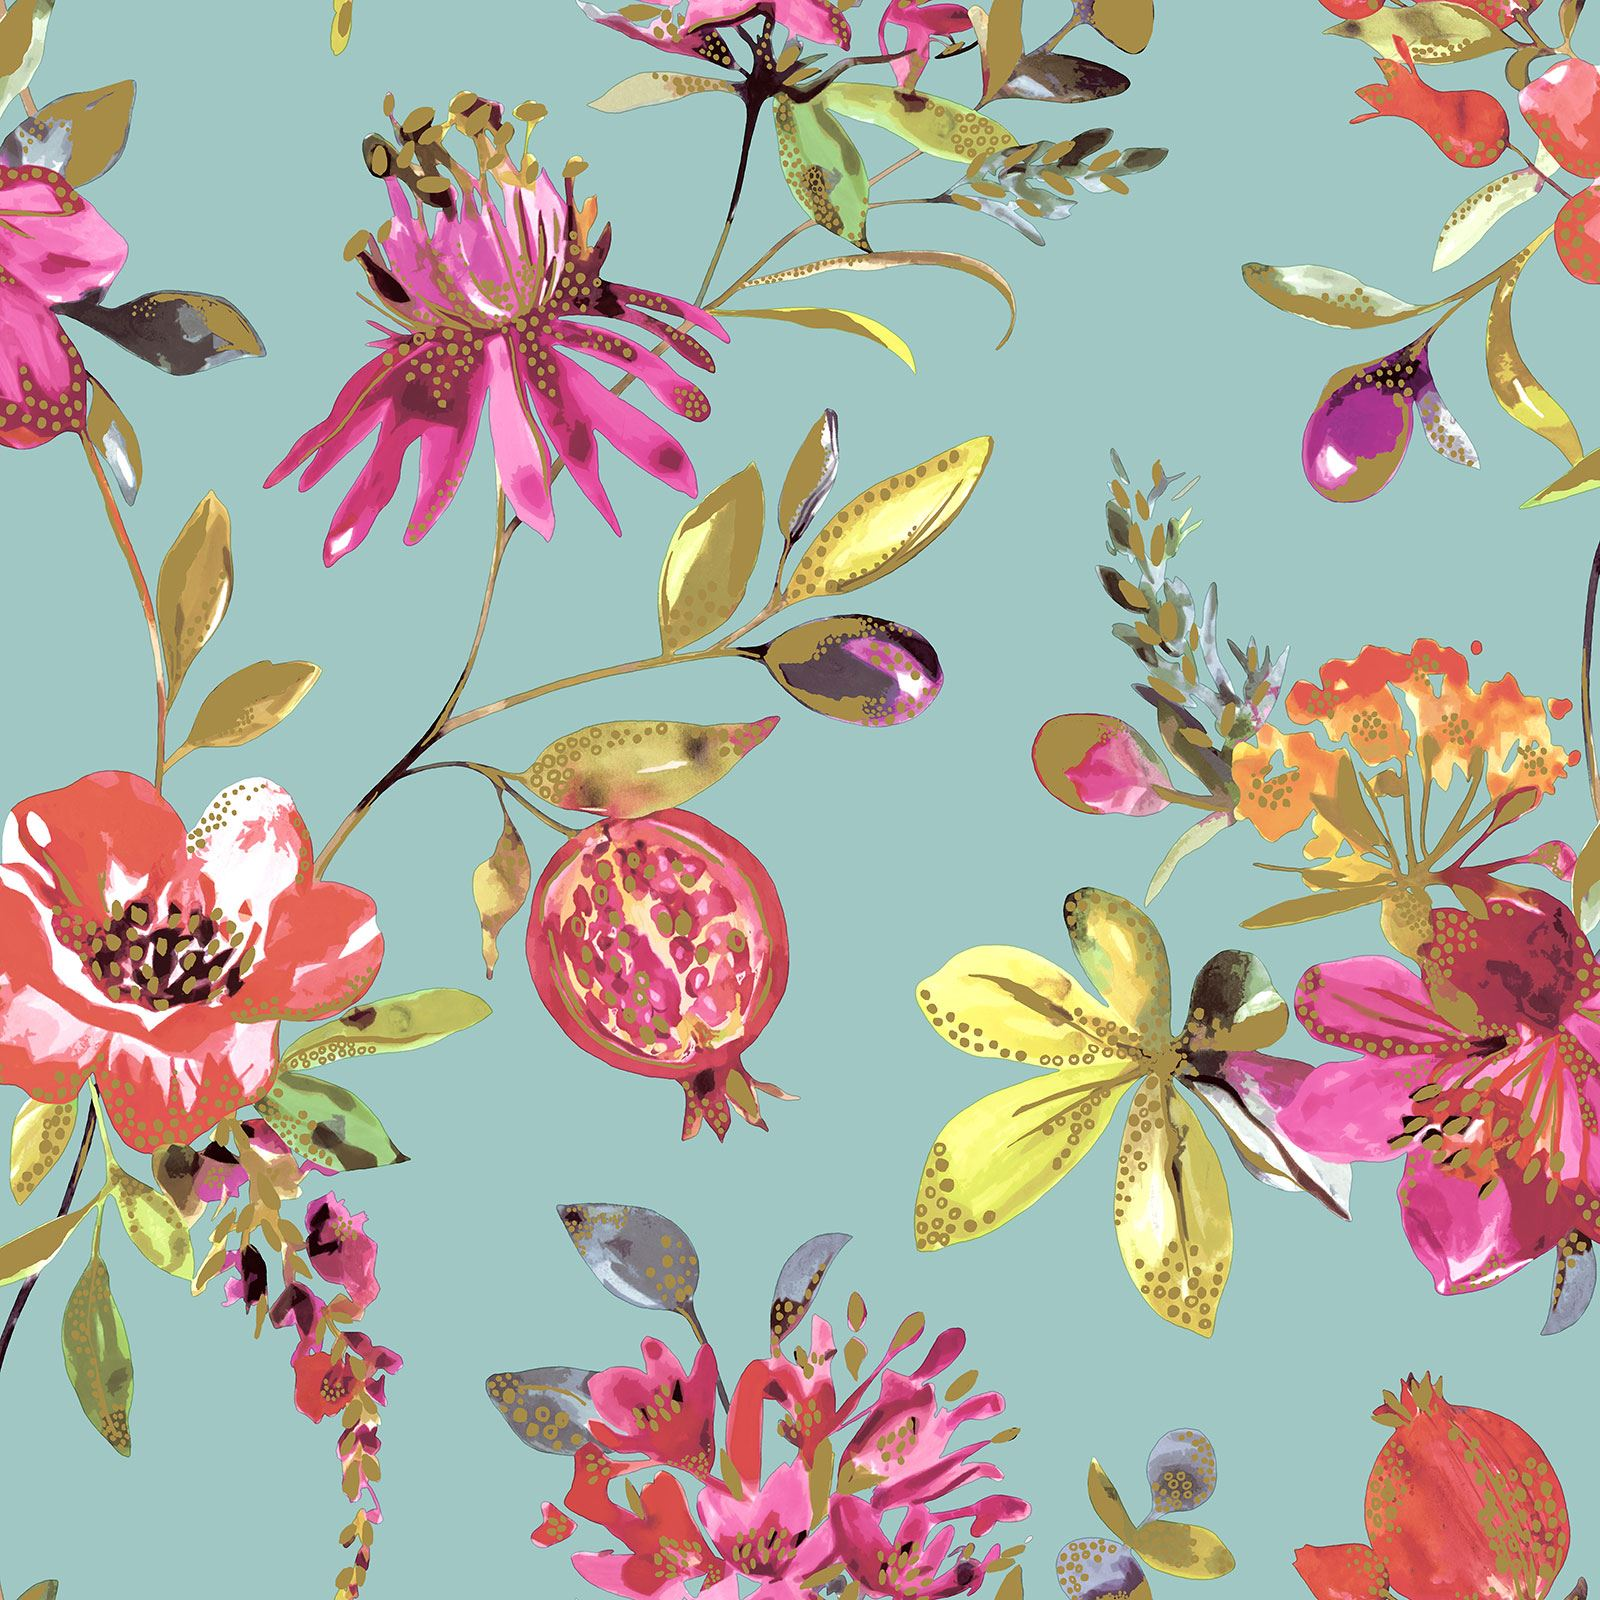 Metallic Teal Flowers Holden Melgrano Floral Wallpaper Pink Navy